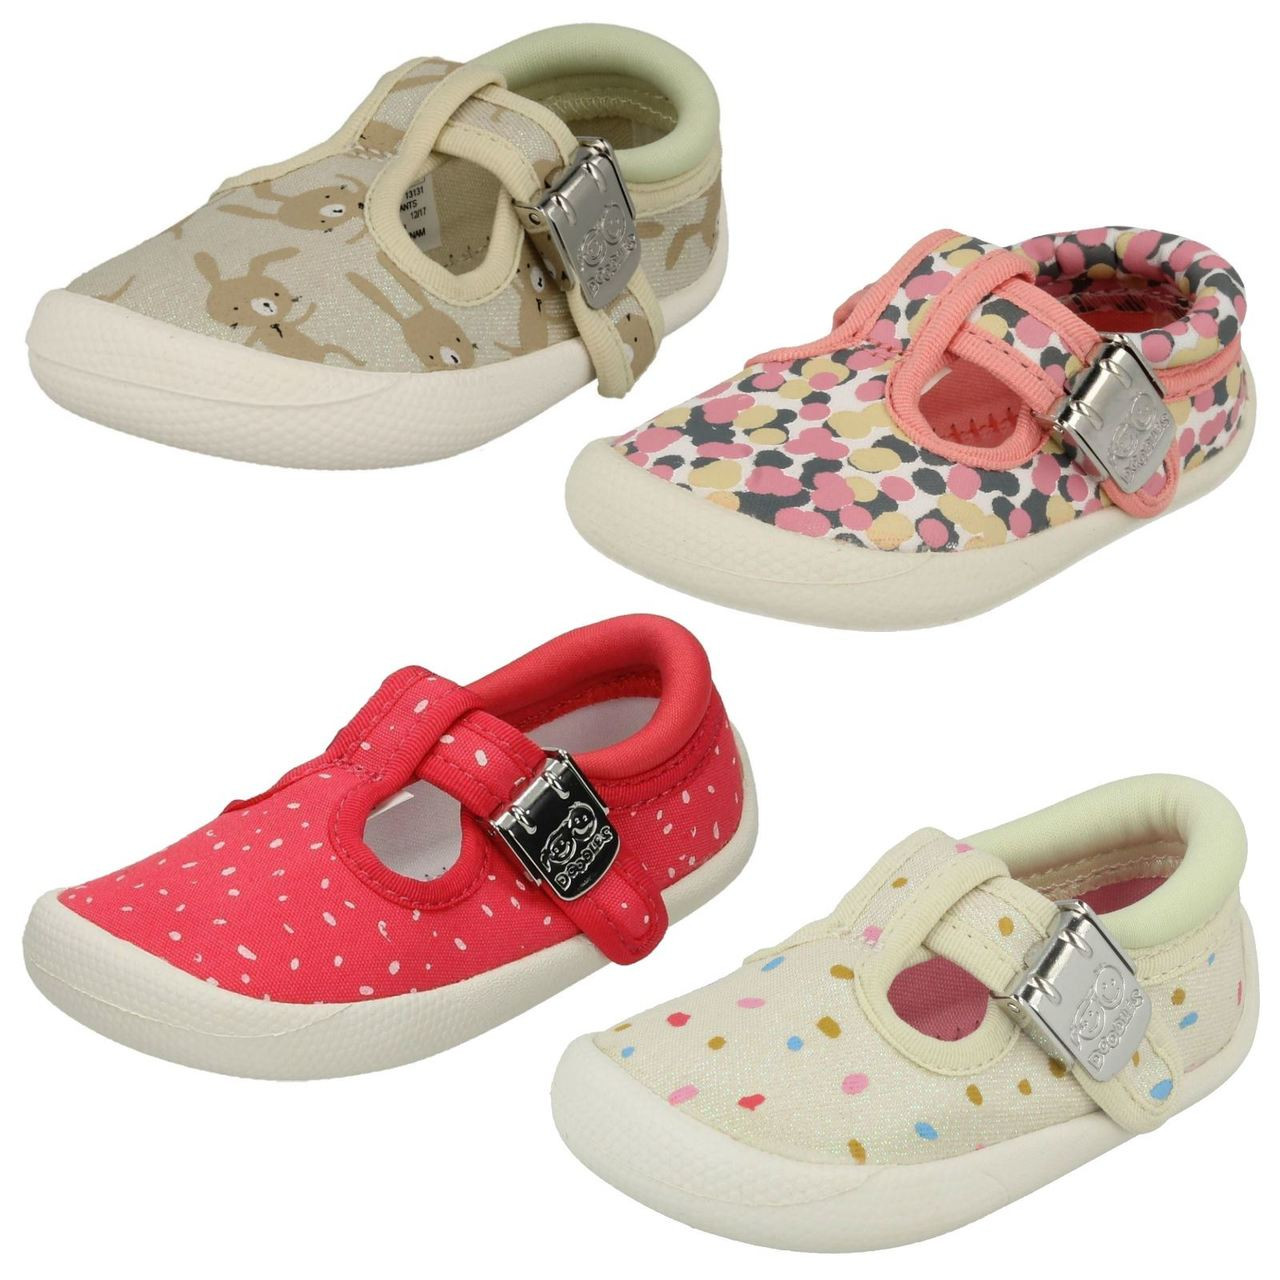 Clarks Childrens Canvas Shoes /'Tiny Treasure/'